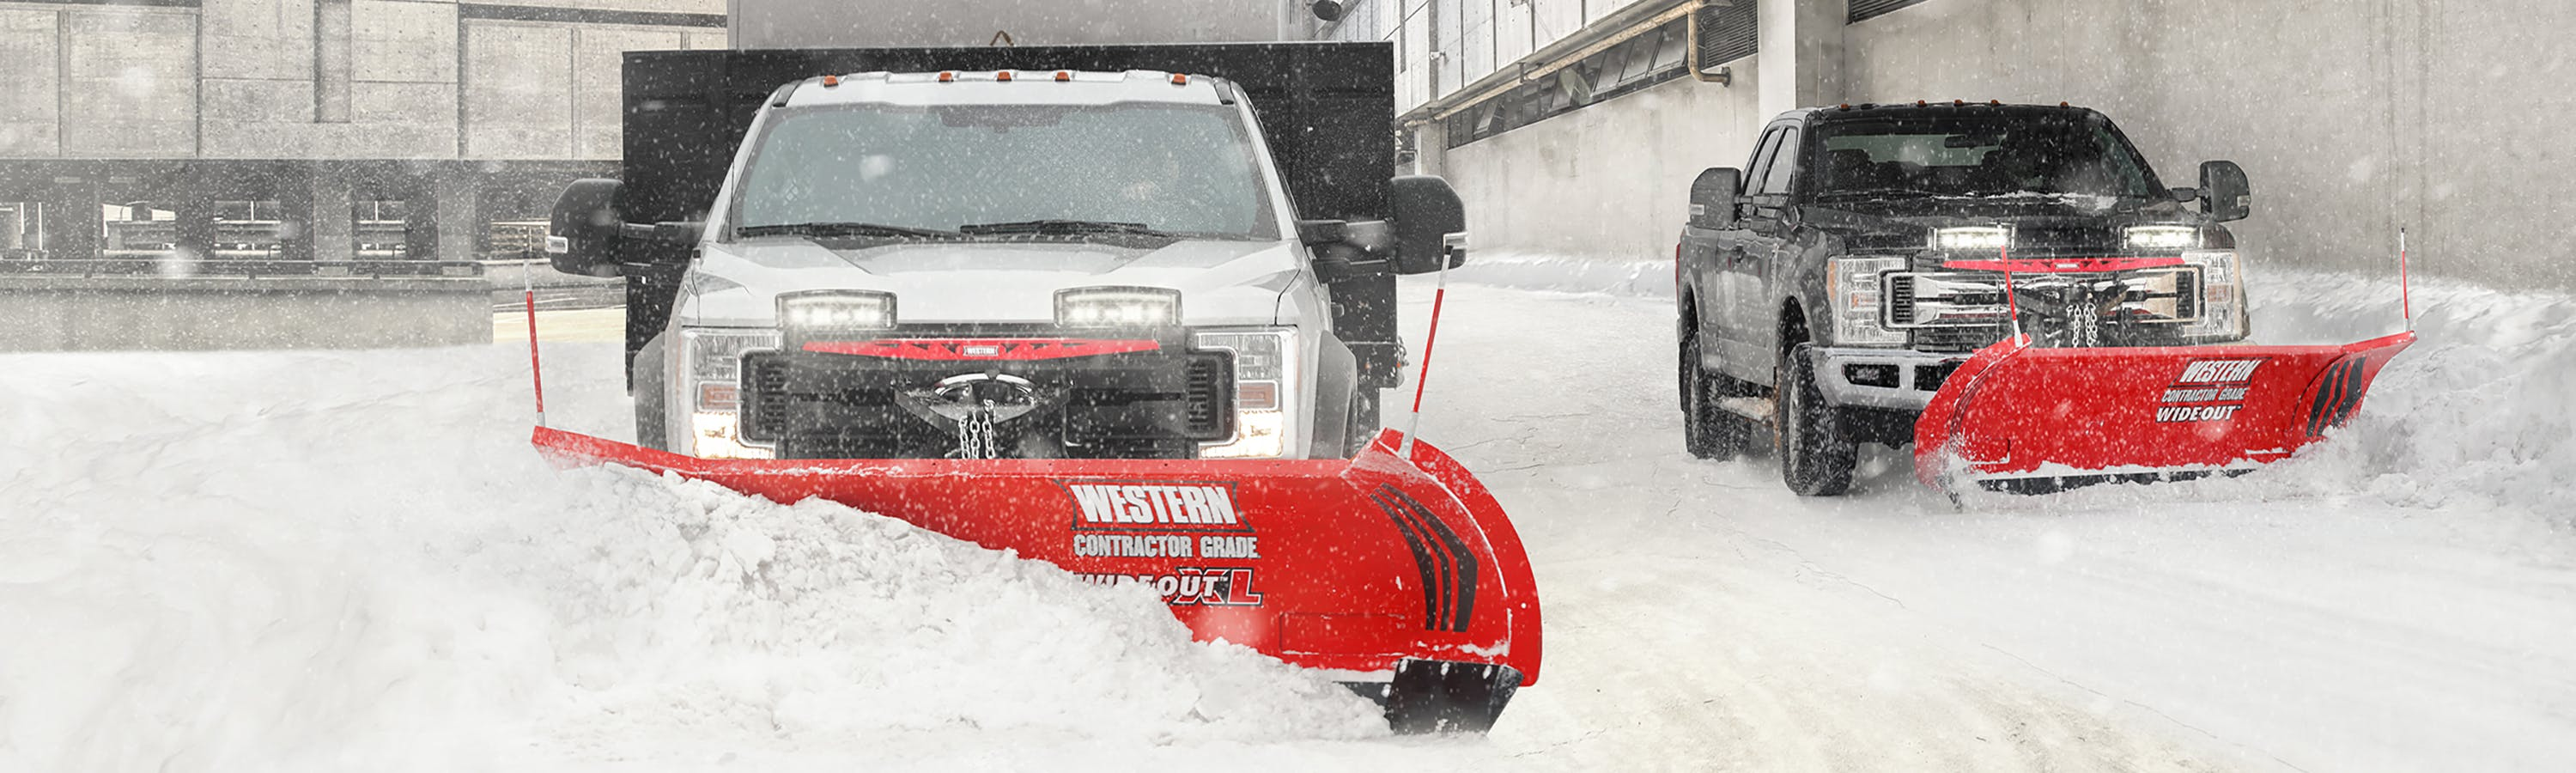 Western Products is a leading manufacturer of snow and ice control equipment in the commercial market.  With over 65 years of manufacturing experience, Western Products has built a reputation for producing high-quality products, including a full line of CONTRACTOR GRADE<sup>®</sup> snow plows for commercial snow plowing, as well as personal use and light municipal snow removal operations. WESTERN® also offers hopper and tailgate-mounted sand and salt spreaders, along with a wide selection of performance-enhancing accessories to help you get more jobs, done faster.